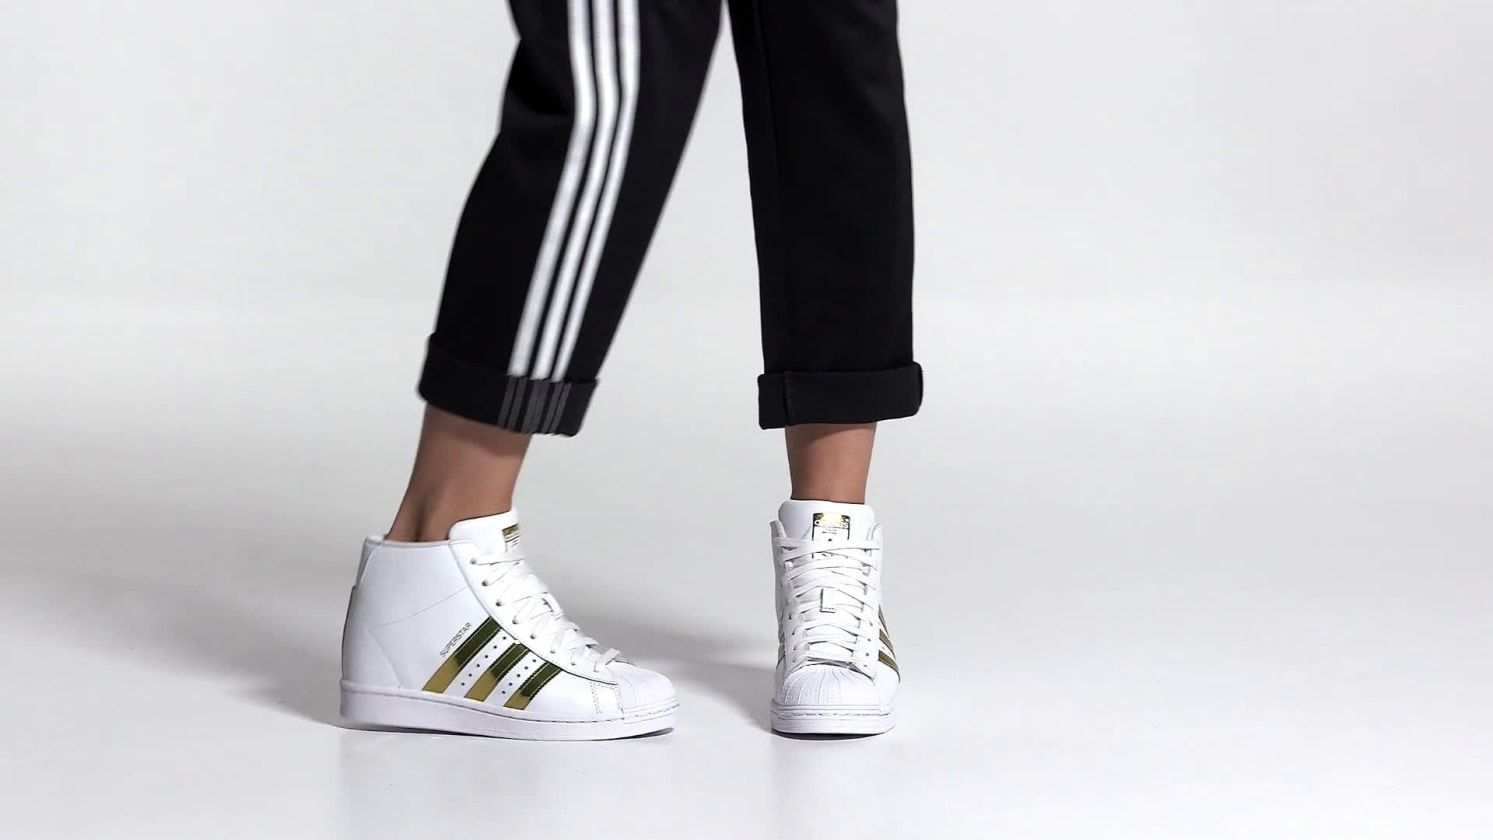 Adidas Superstar 80v Limitededition Sneakers Adidas Superstar Metal Toe Sneakers Adidas Superstar